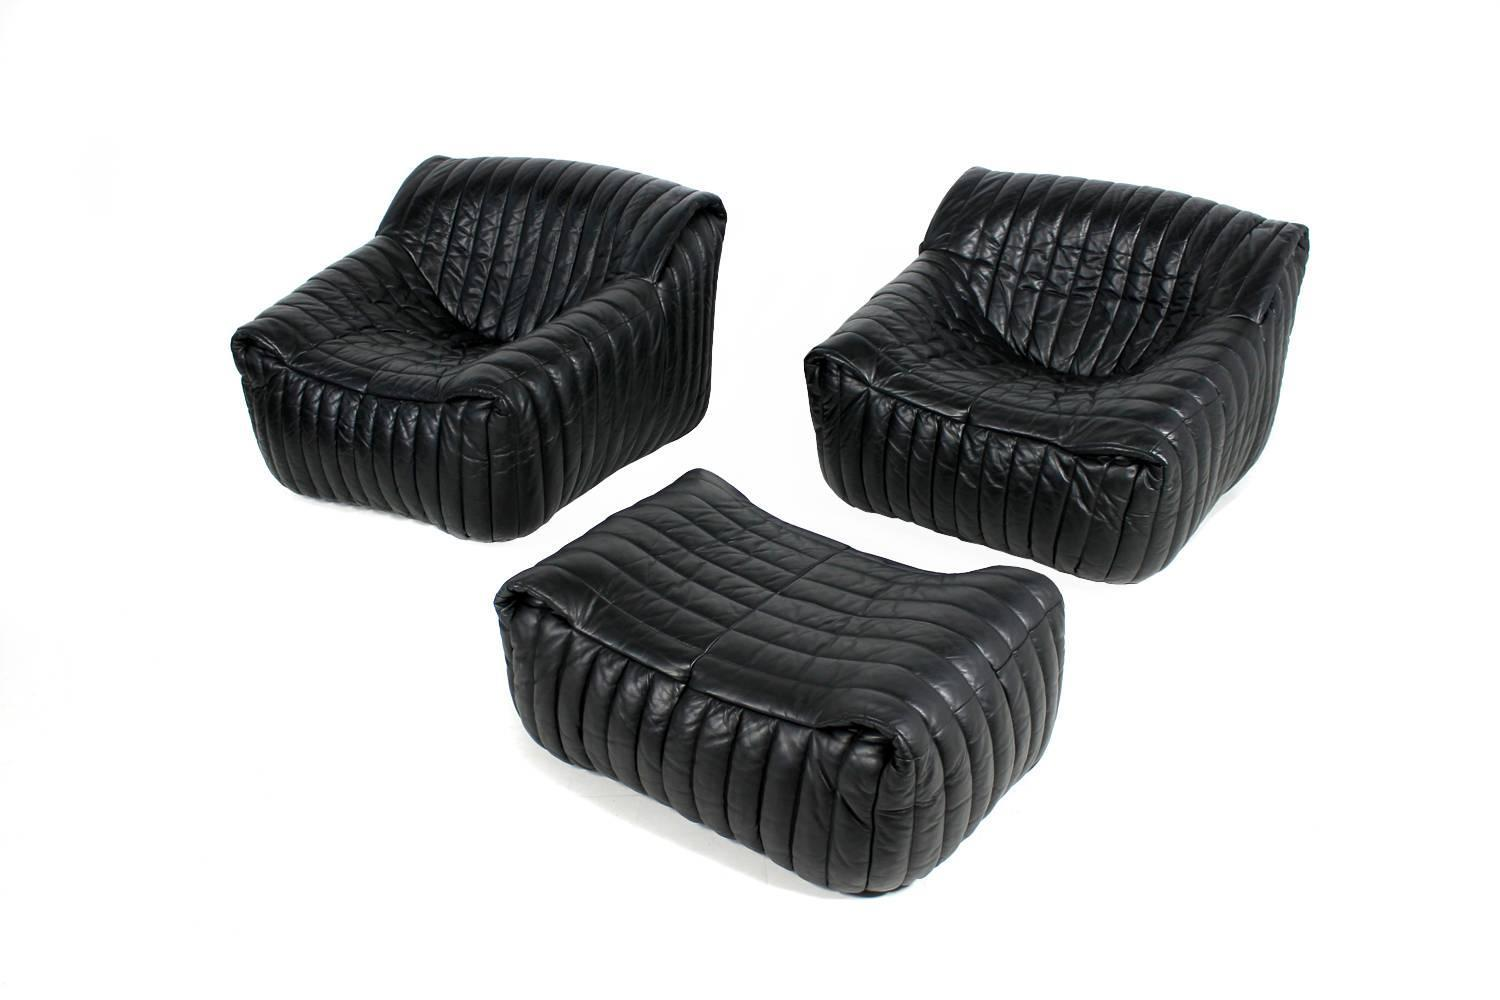 exclusive and organic 1970s leather sofa and lounge chairs. Black Bedroom Furniture Sets. Home Design Ideas